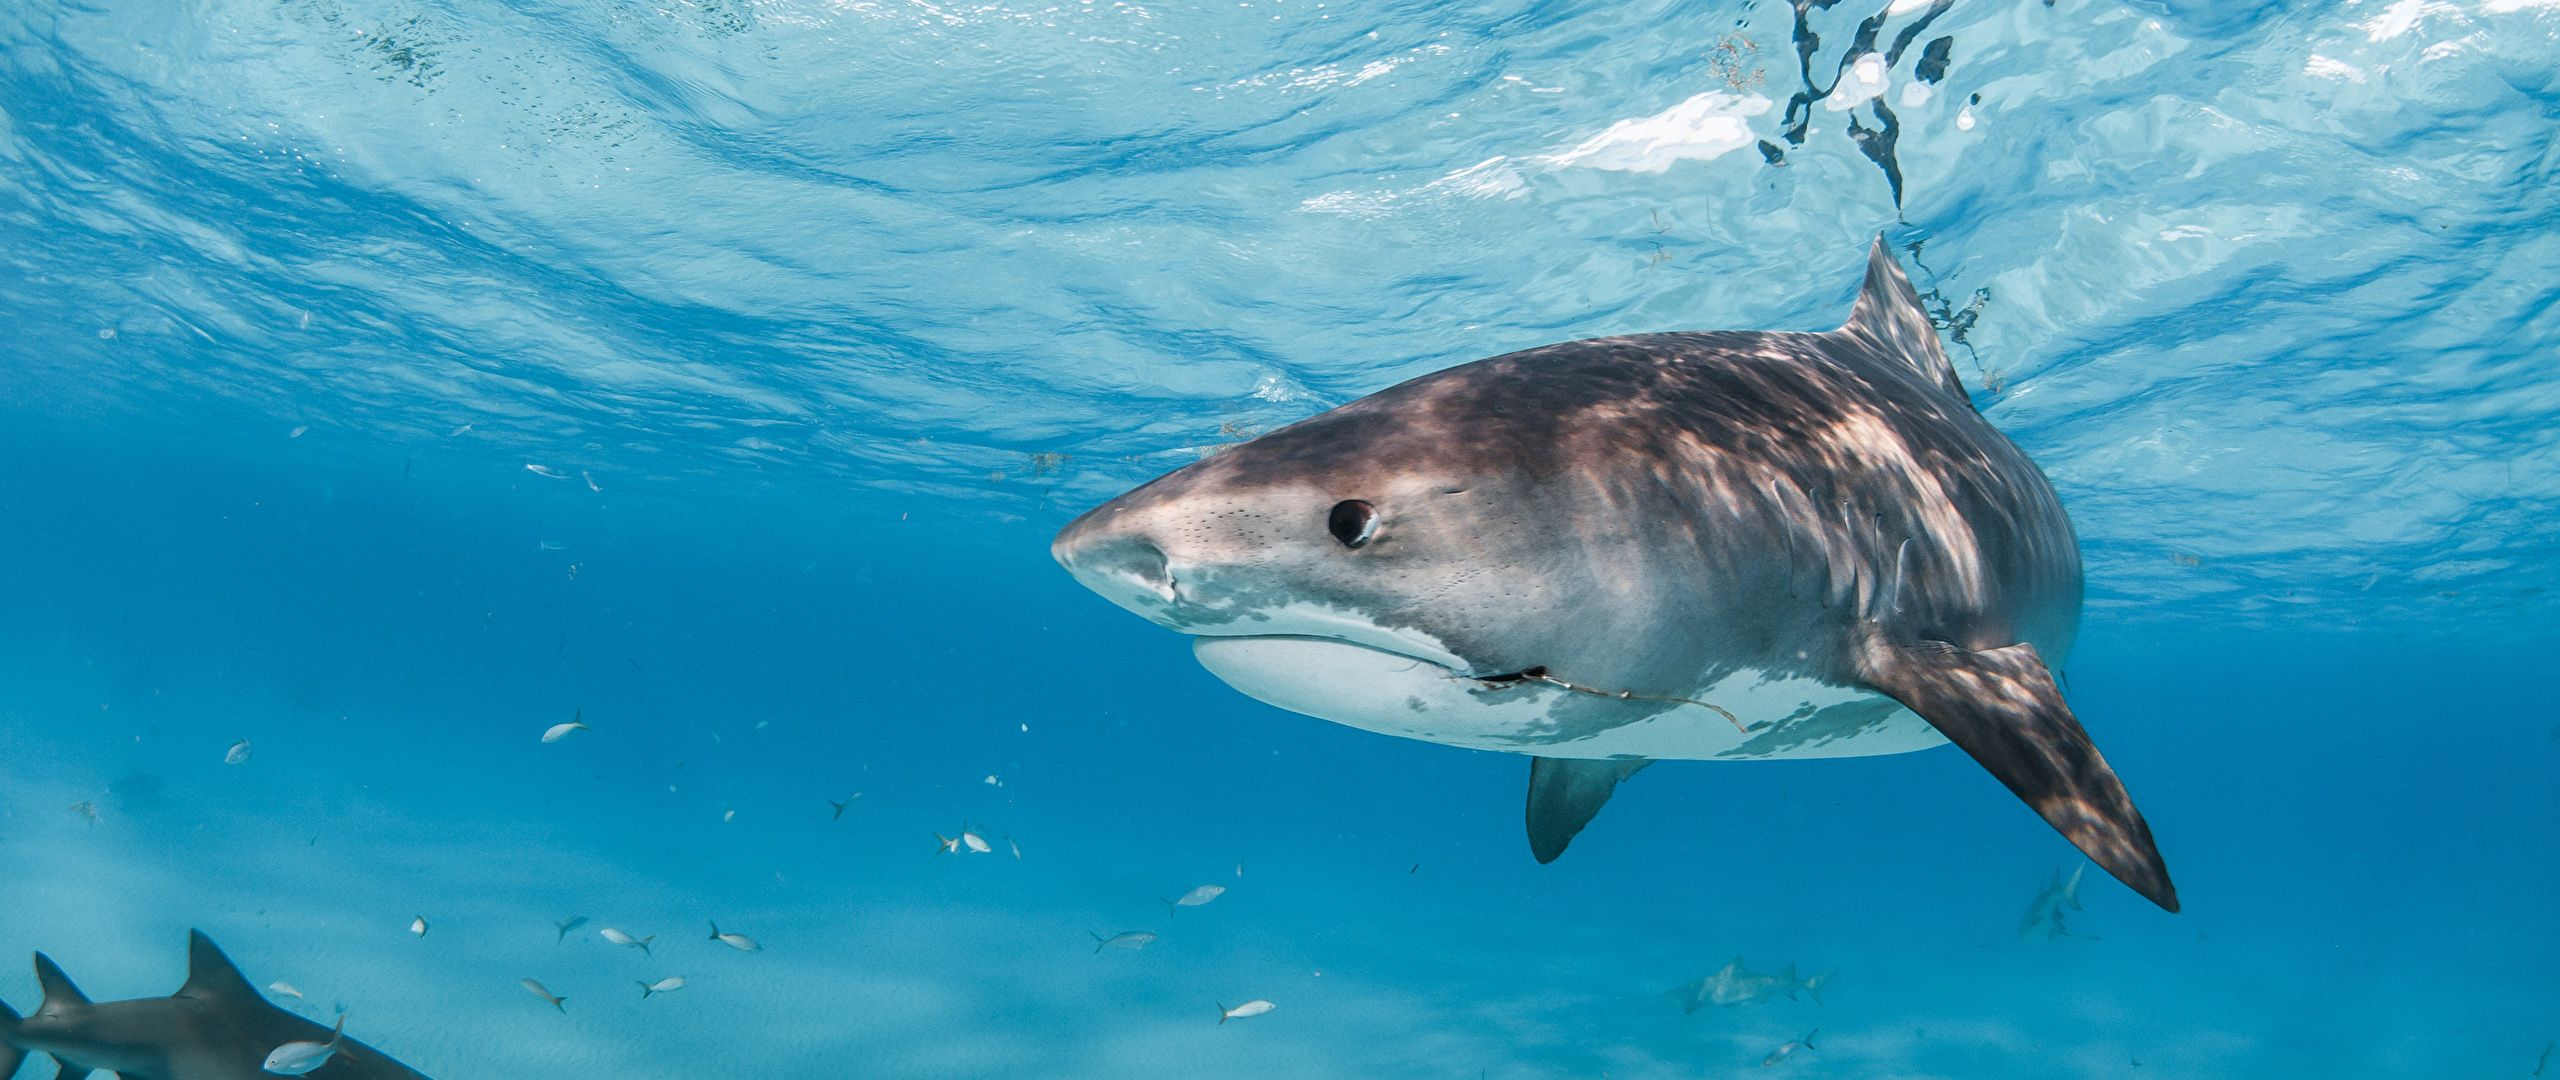 animals Shark Great White Shark Wallpapers HD Desktop and